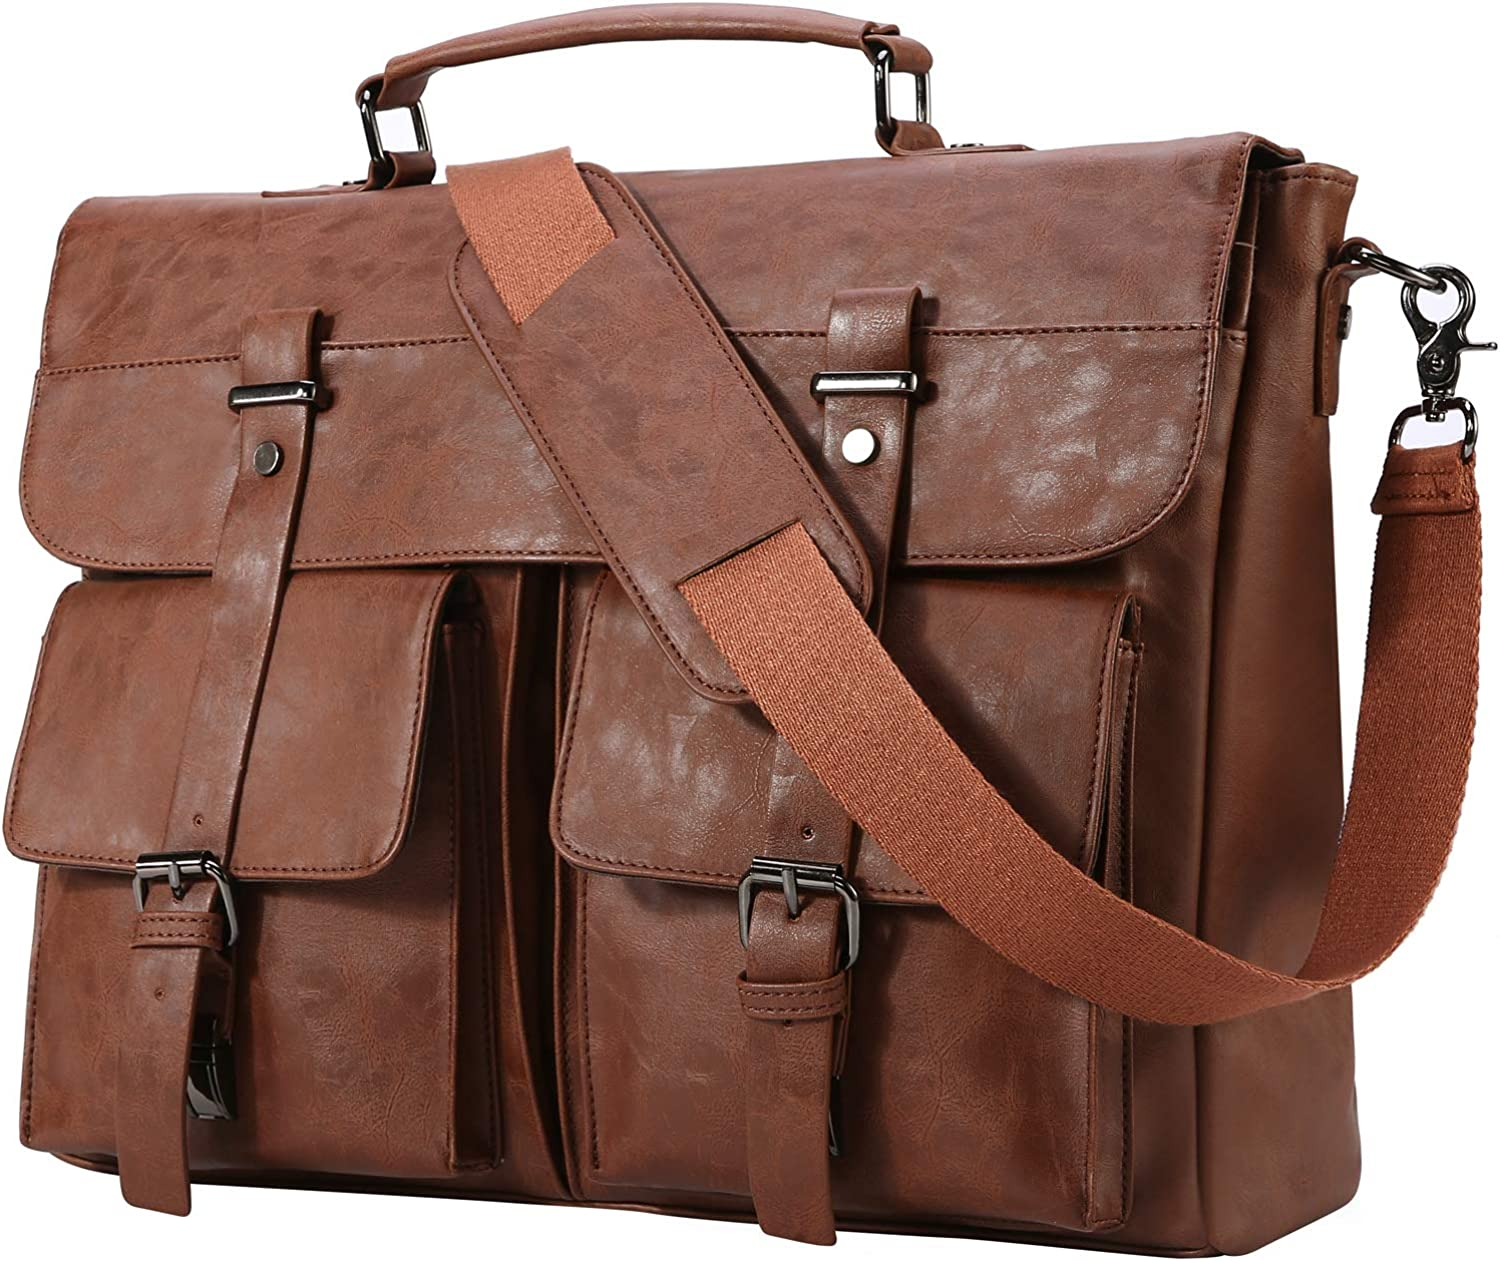 Leather Messenger Bag for Men, 14 15.6 17.3 Inch Vintage Leather Laptop Bag Briefcase Satchel,Large School Work Bag